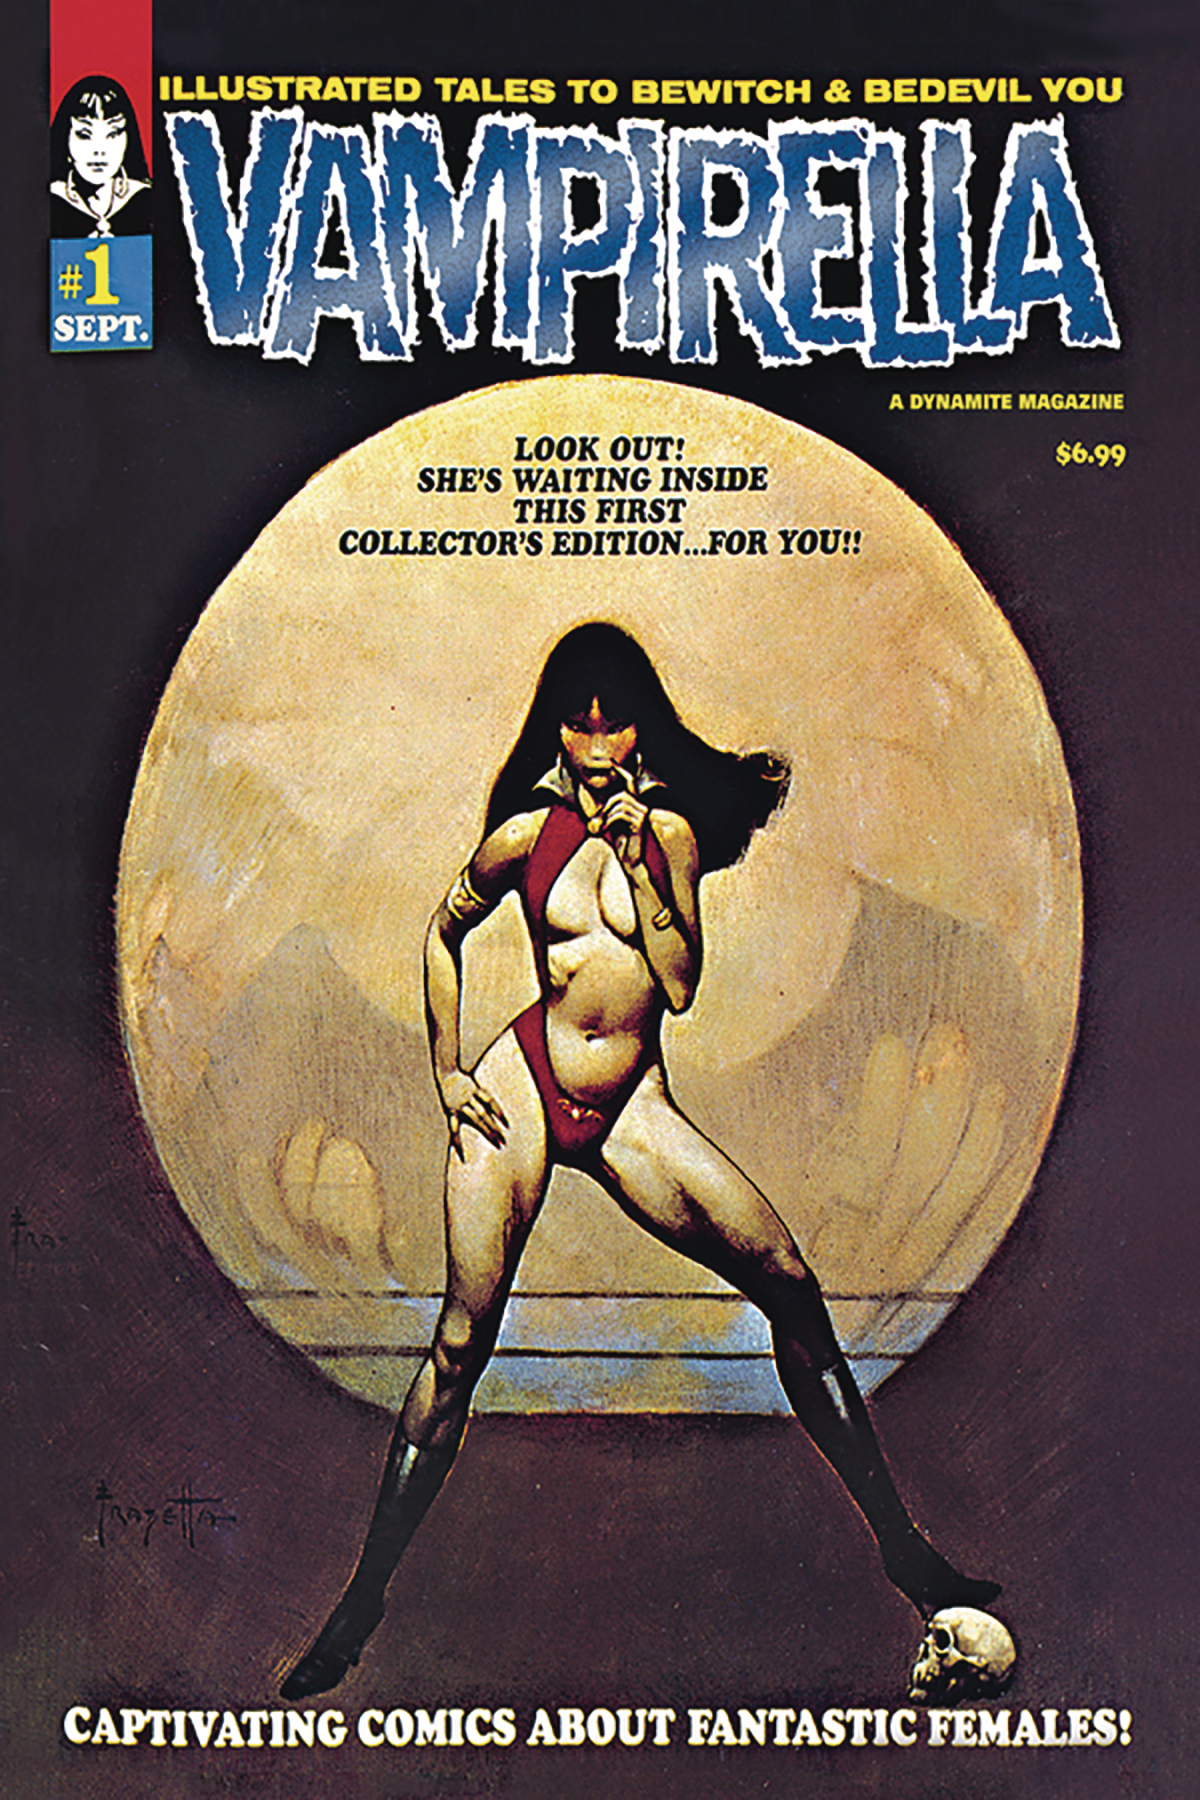 VAMPIRELLA #1 1969 REPLICA ED LTD BLUE FOIL CVR